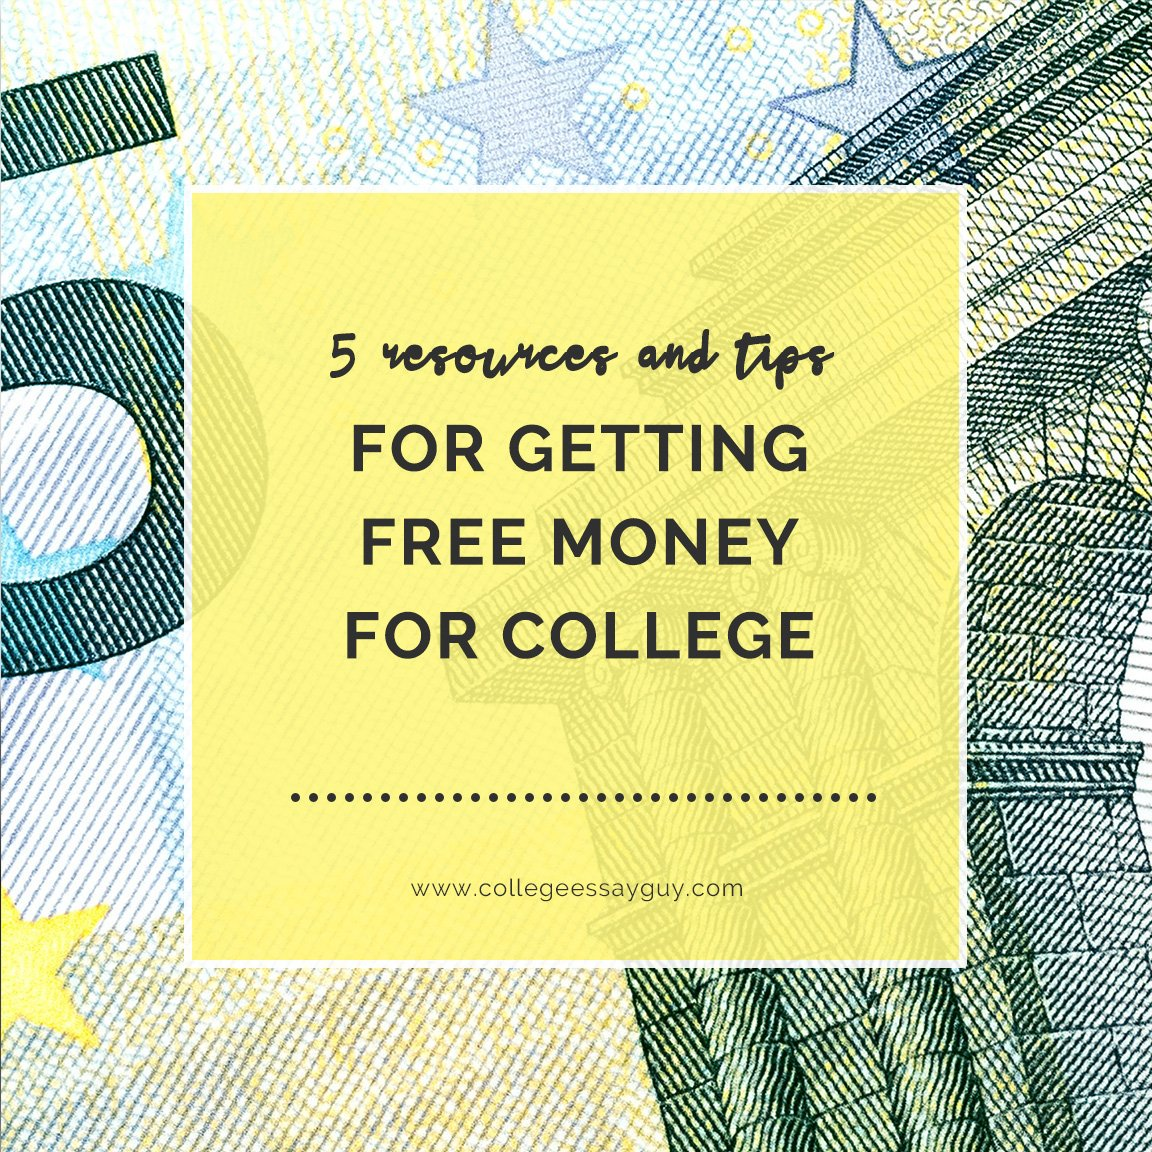 Dive in and discover the keys to finding scholarships that can help you pay less for college, whether you're looking for scholarships for women, a minority scholarship, weird scholarships, need based financial aid, and much more. goo.gl/KuAVTb